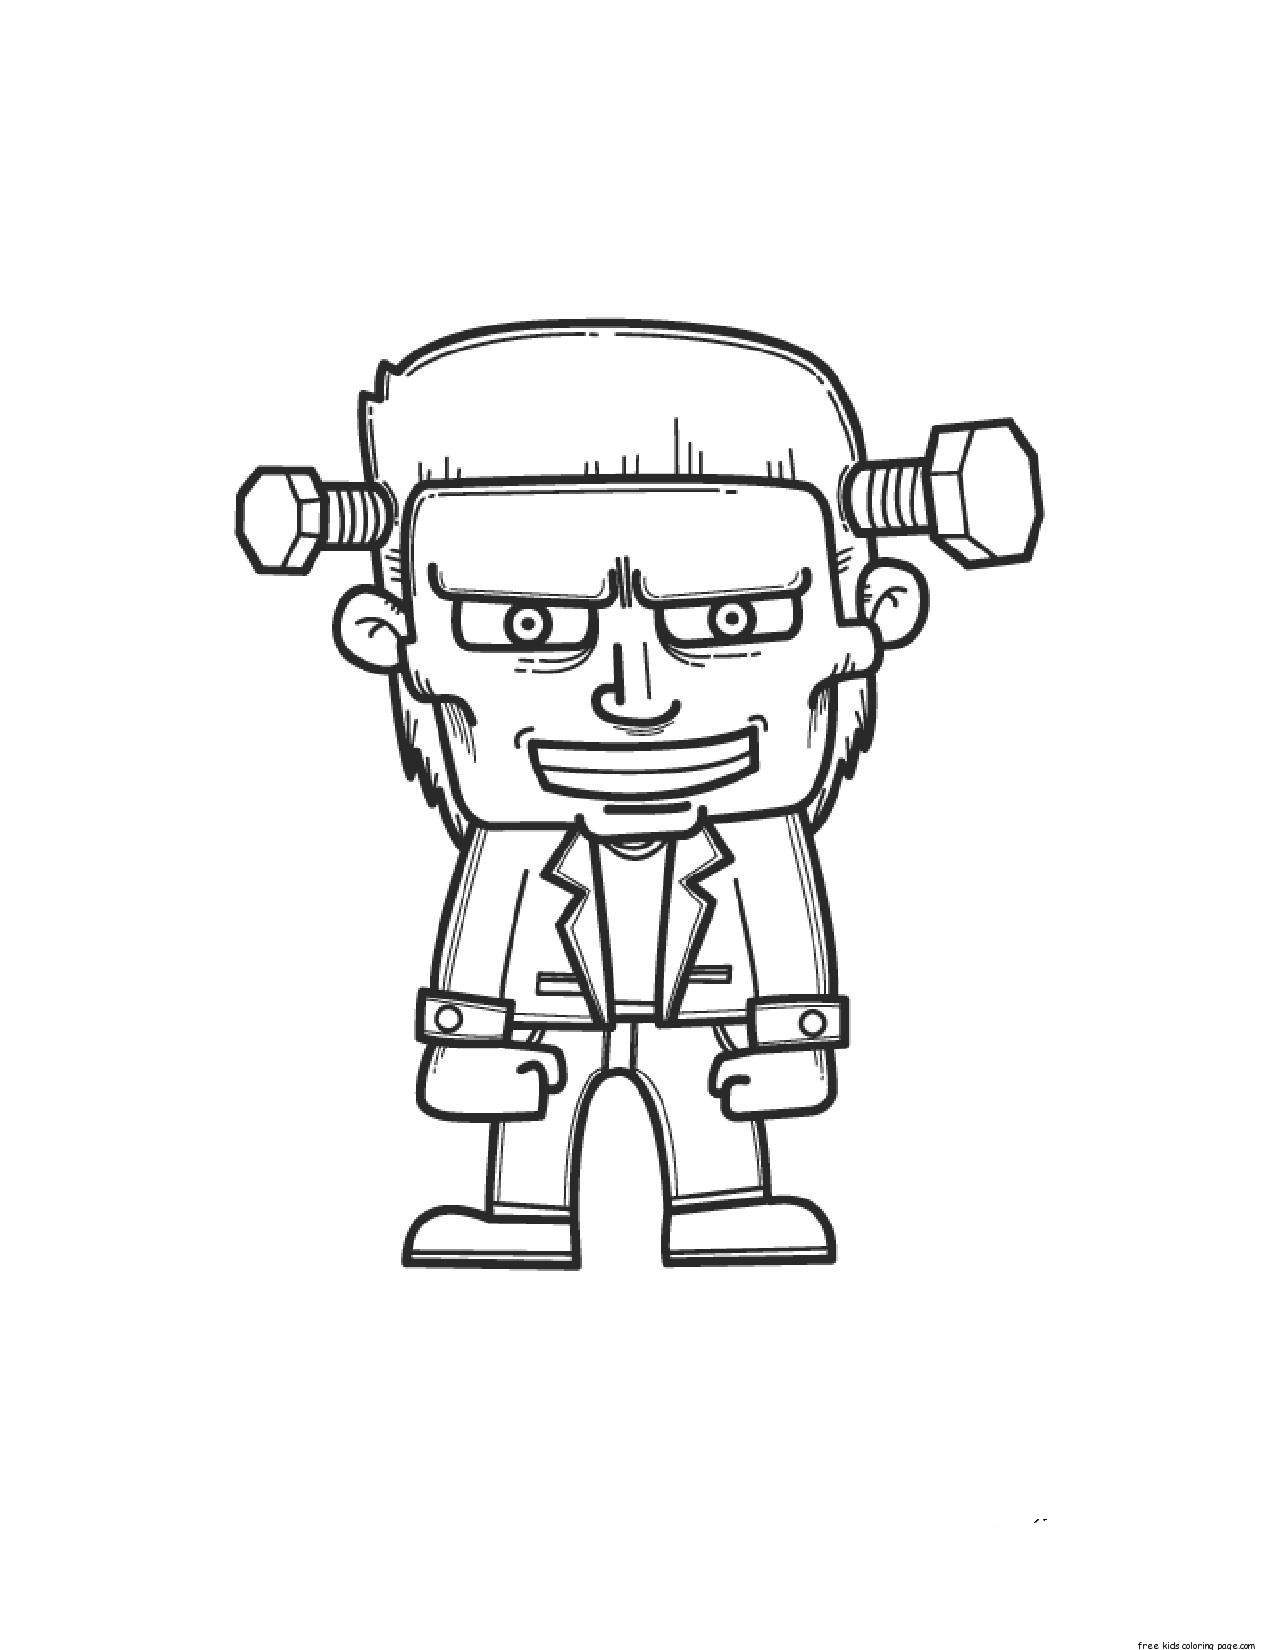 Frankenstein halloween coloring pages for kidsfree for Halloween frankenstein coloring pages